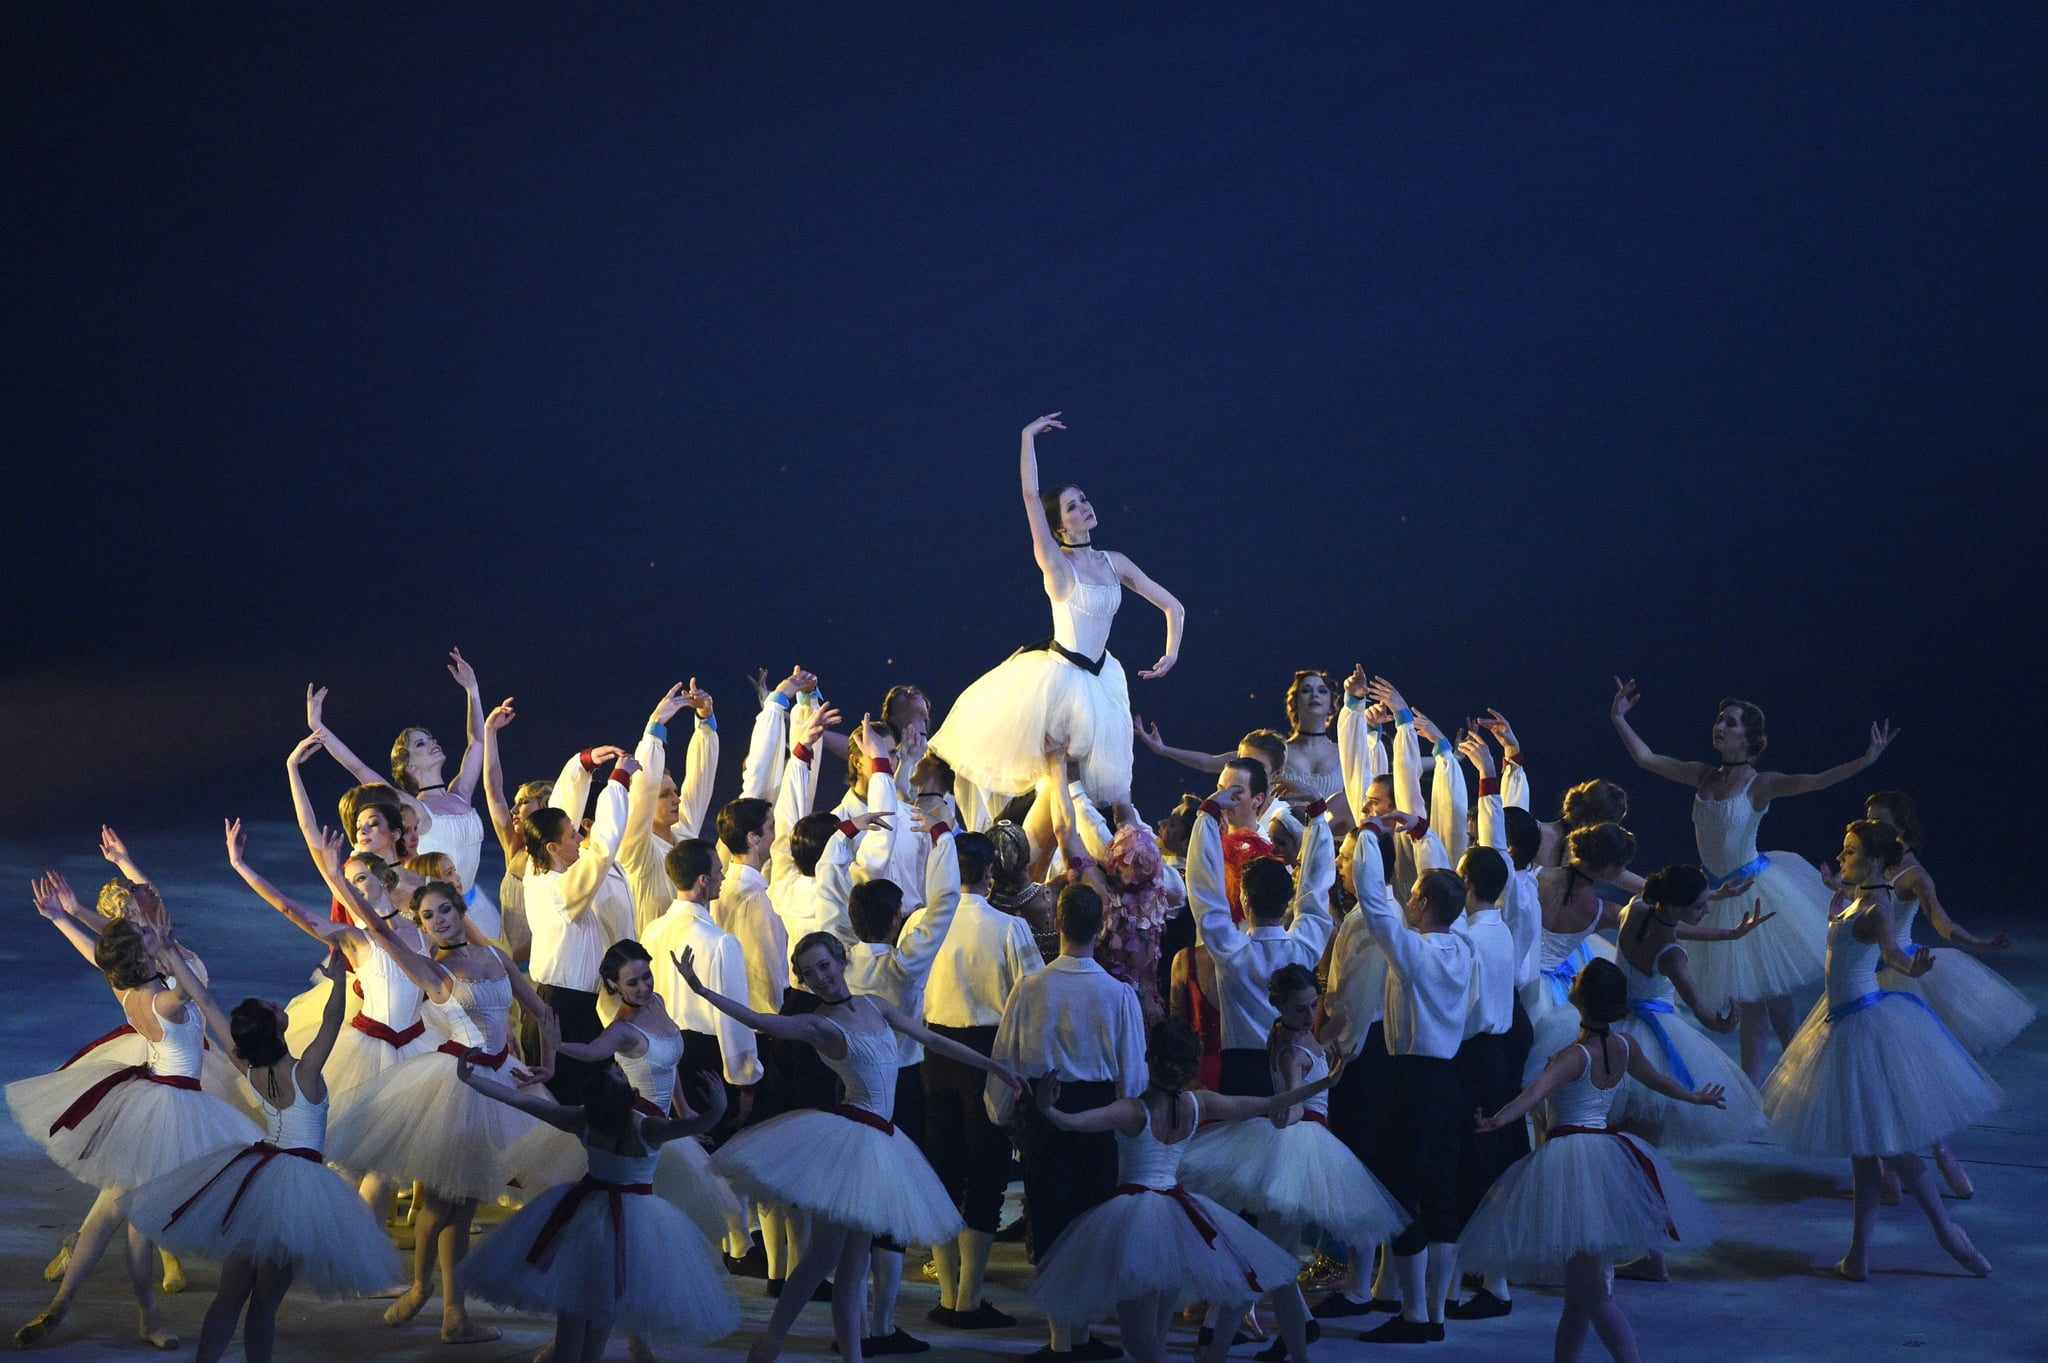 The closing ceremony highlighted Russian dance with a ballet performance.